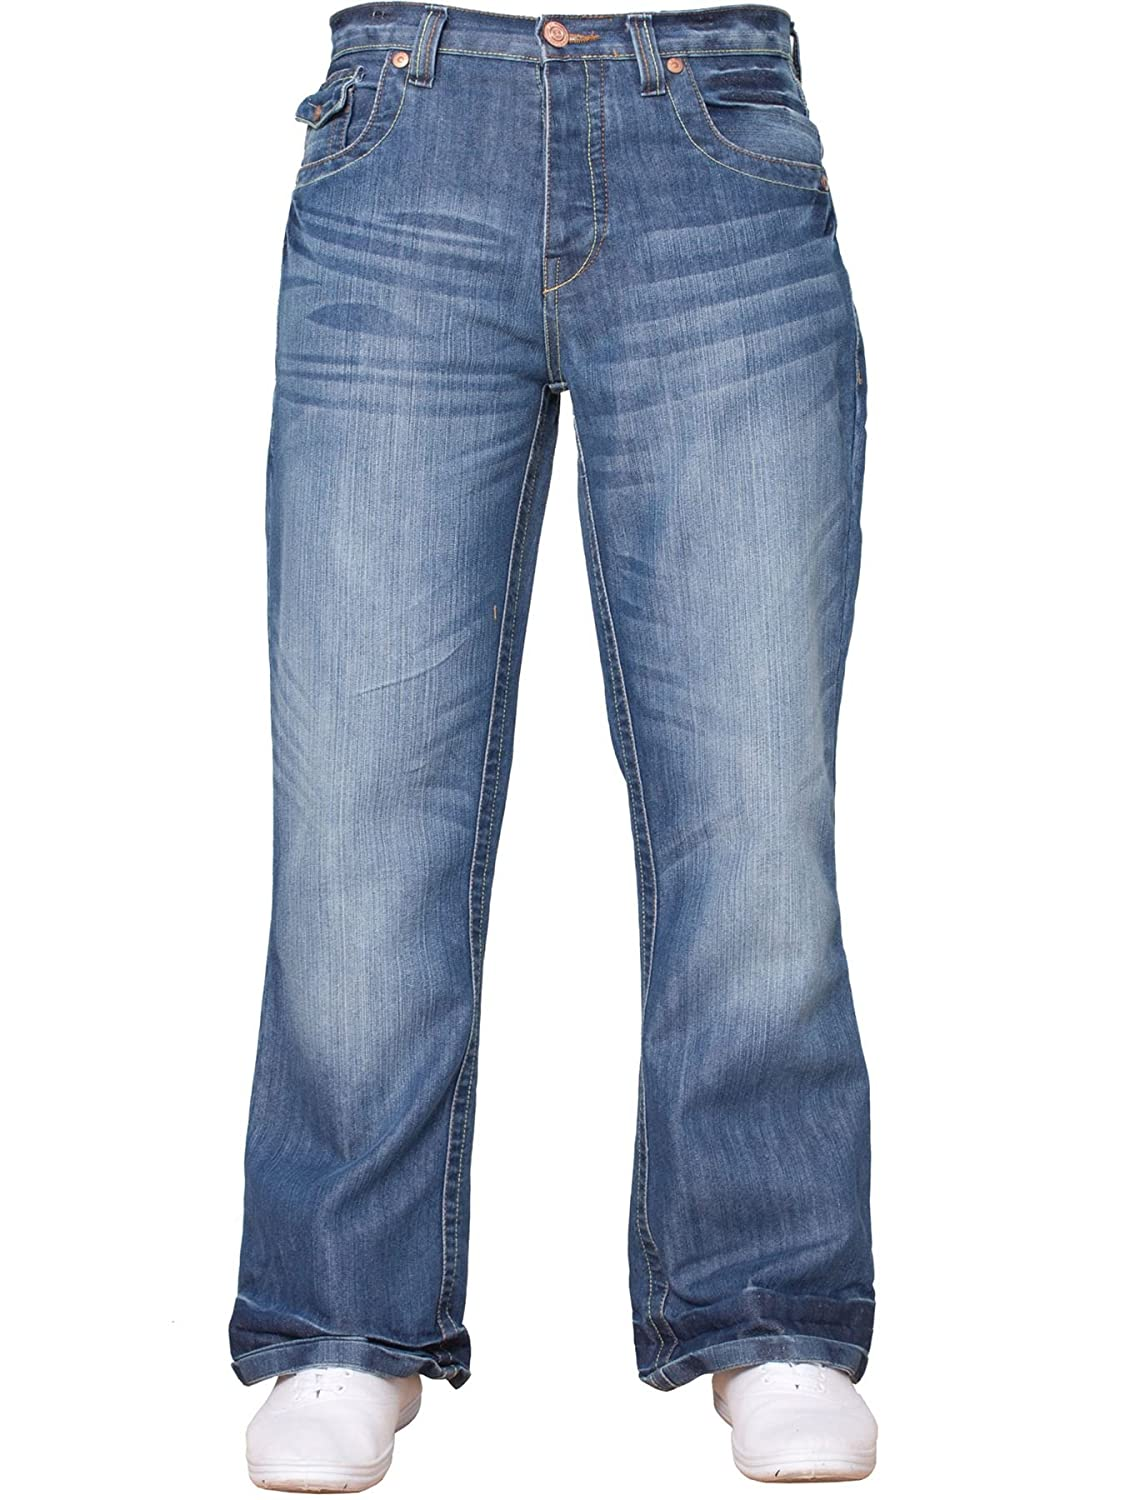 APT Mens Basic Bootcut Wide Leg Flared Denim Jeans - Range of Waist Sizes & Colours Available